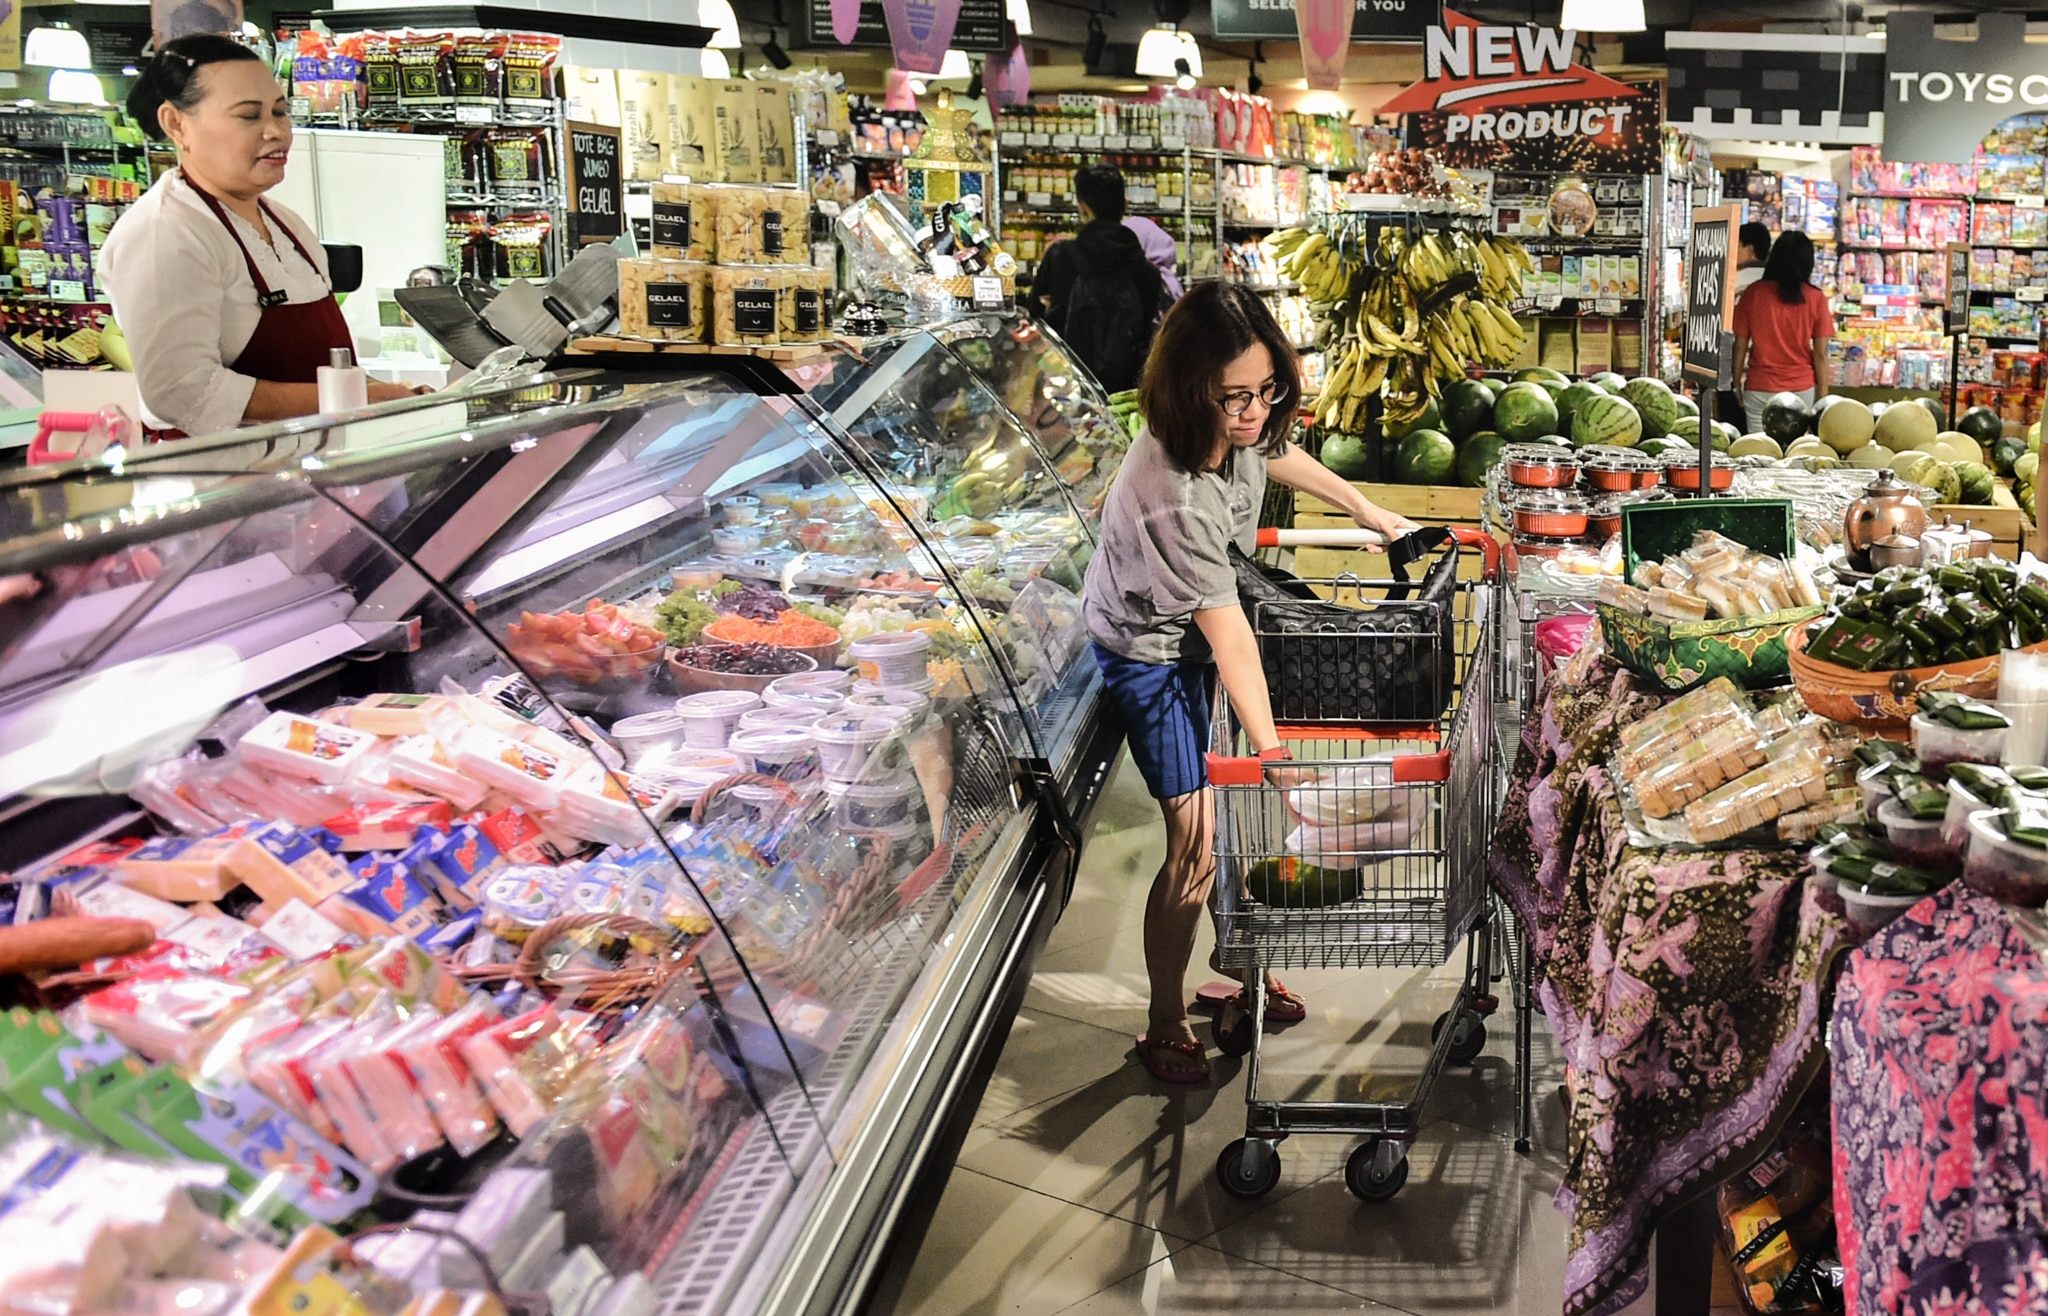 People in grocery store (© Bay Ismoyo/AFP/Getty Images)